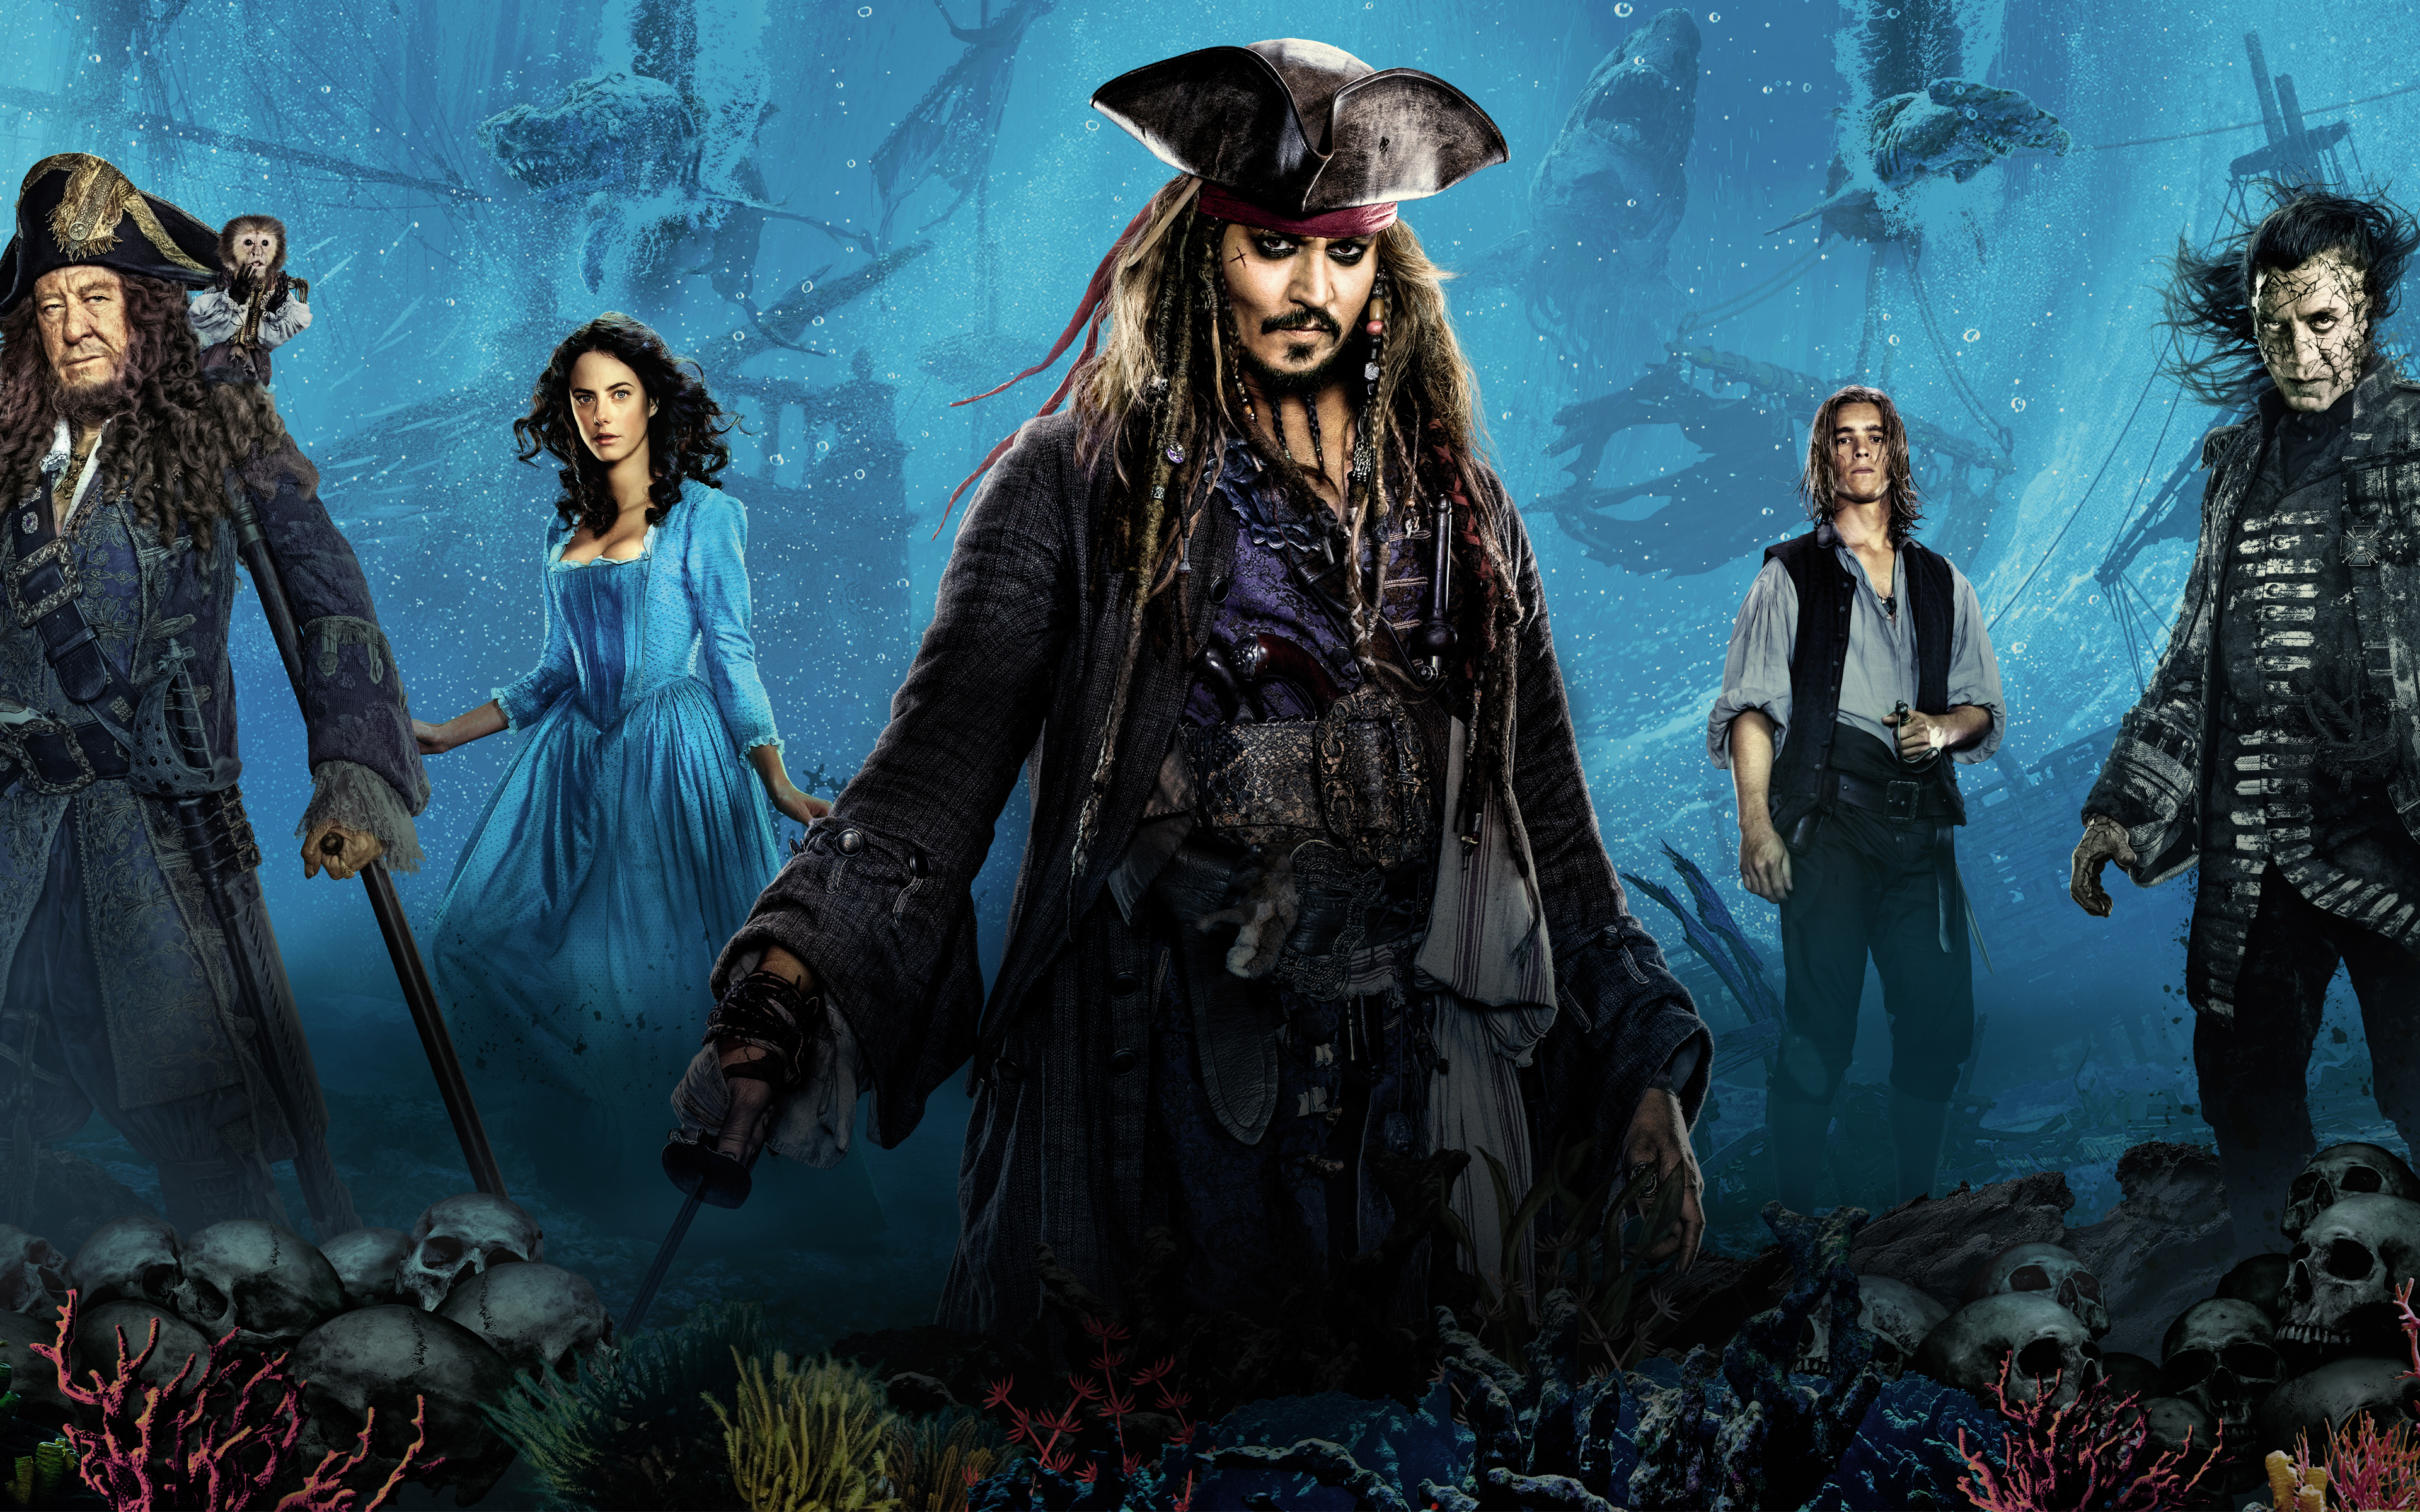 Pirates of the Caribbean Dead Men Tell No Tales 4K 8K 2017440472894 - Pirates of the Caribbean Dead Men Tell No Tales 4K 8K 2017 - The, Tell, Tales, Pirates, Men, Dead, Caribbean, Birds, 2017